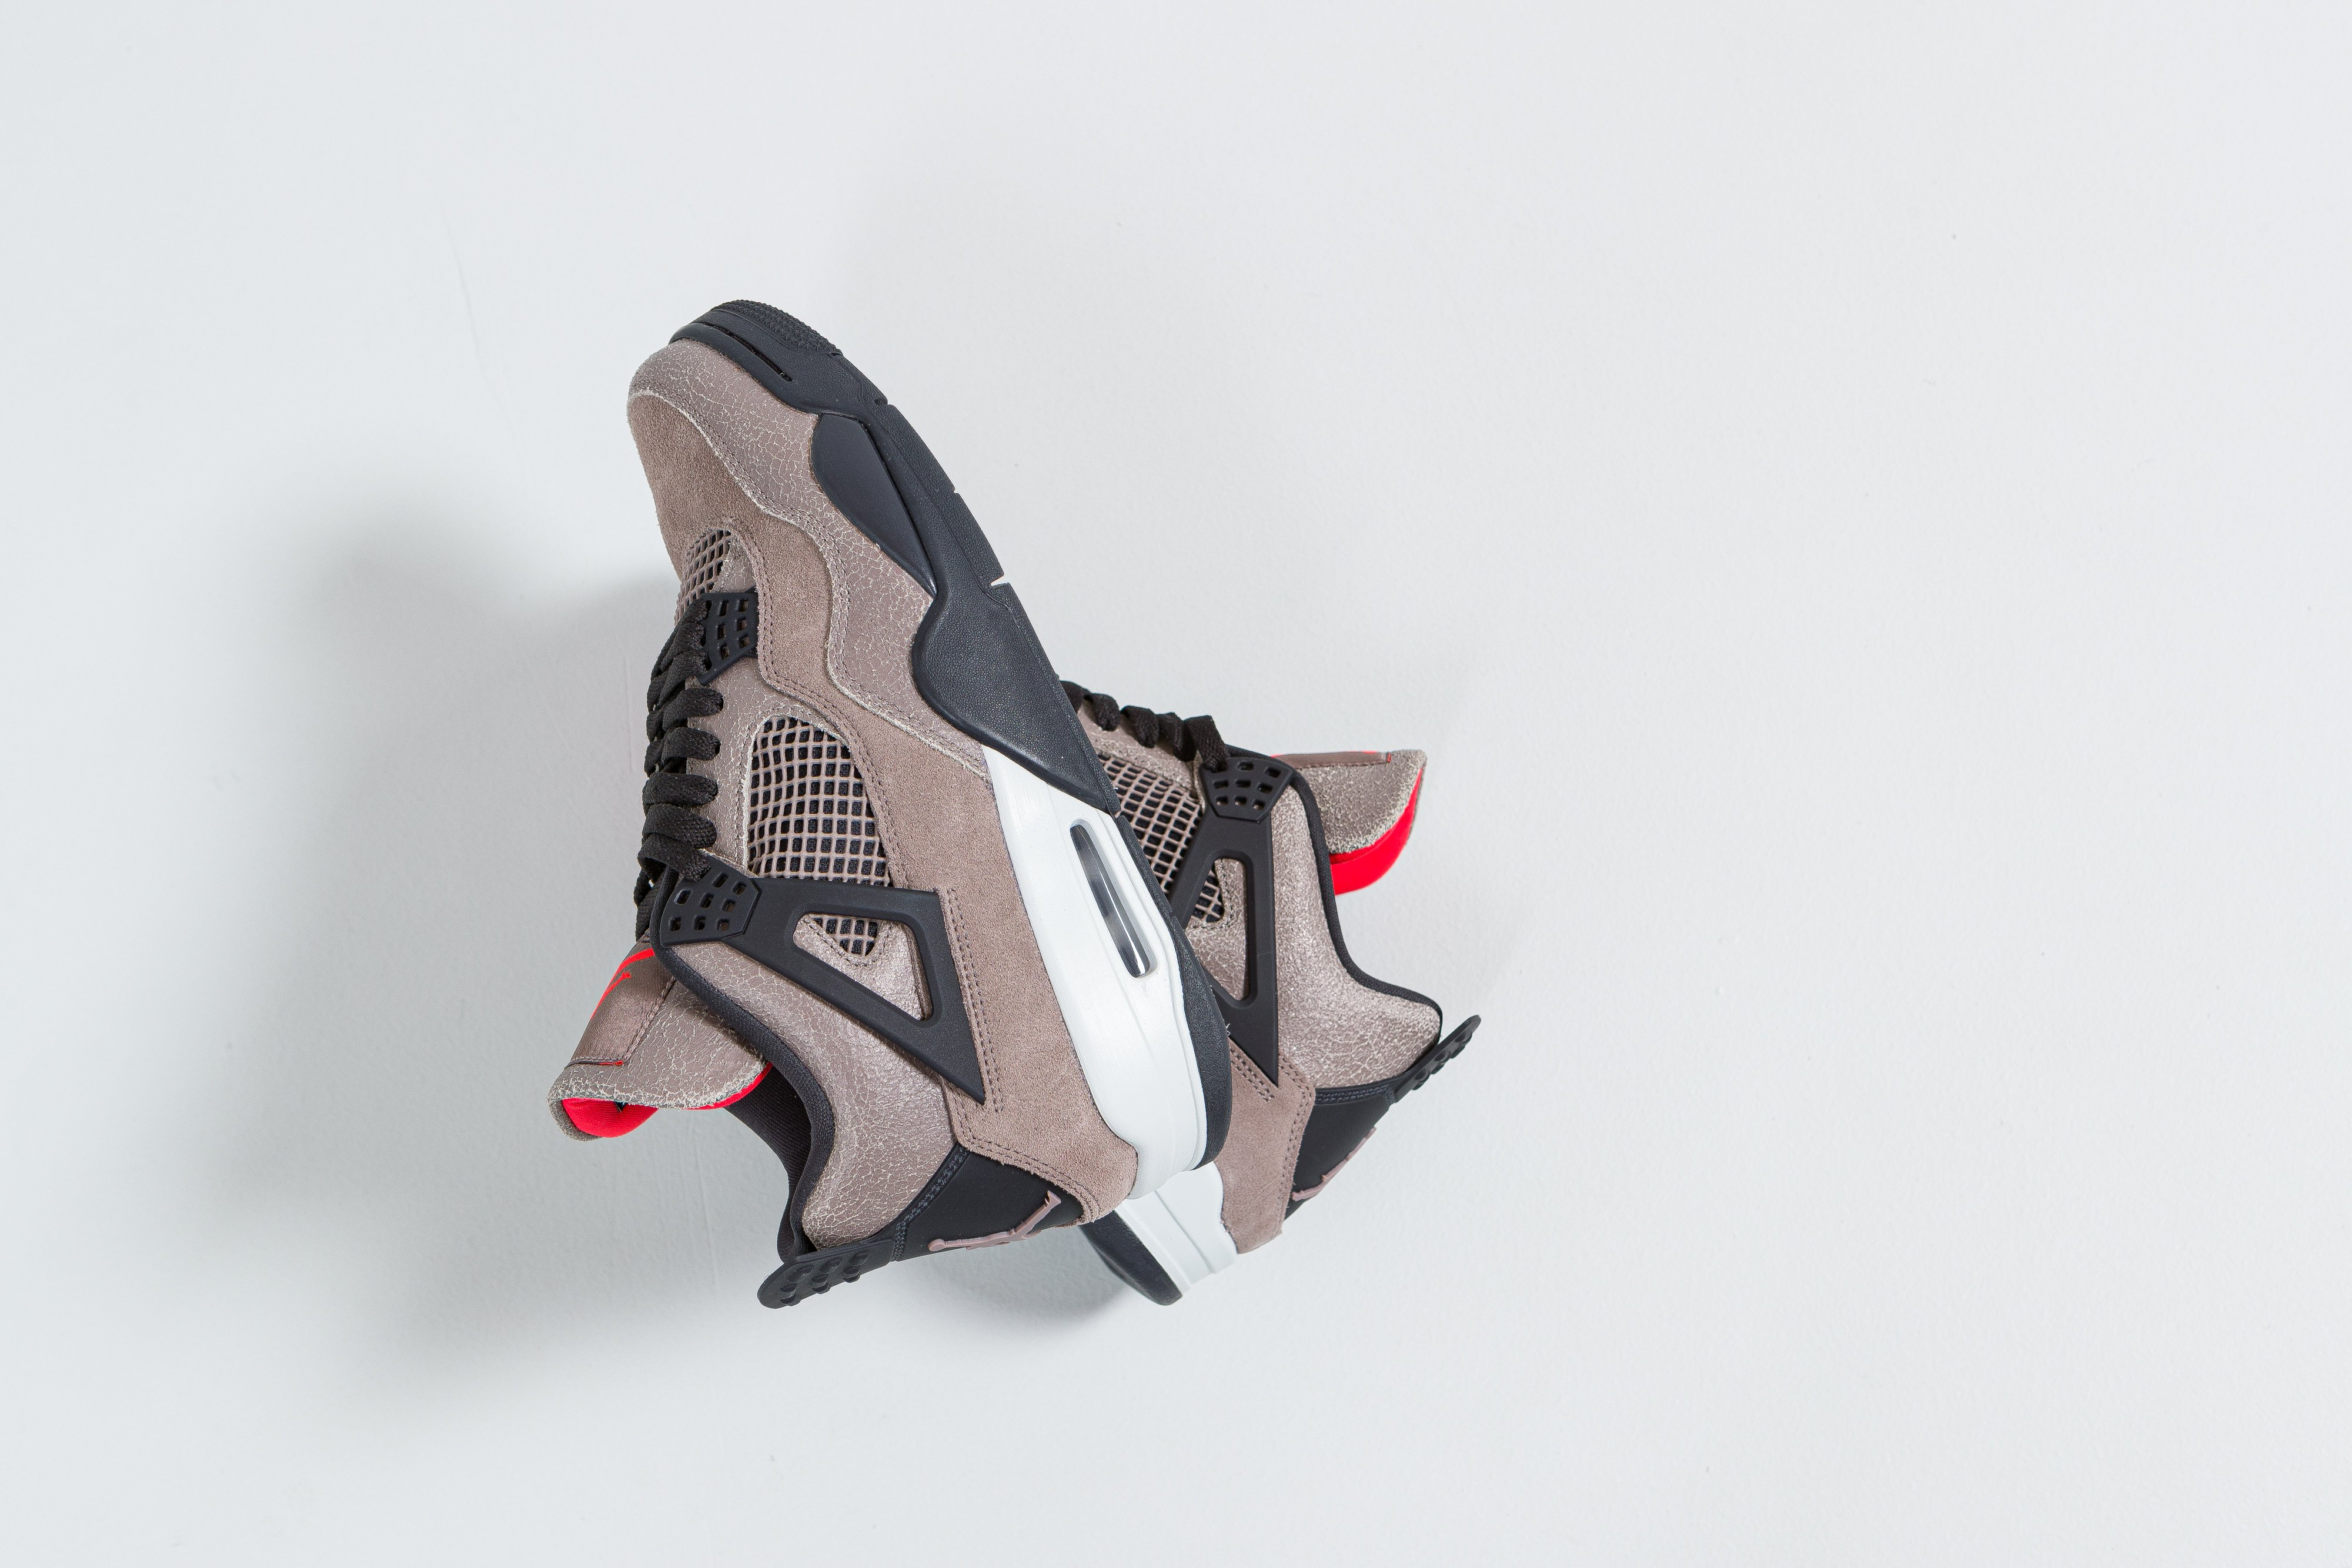 Up There Launches - Nike Air Jordan 4 Retro 'Taupe Haze'